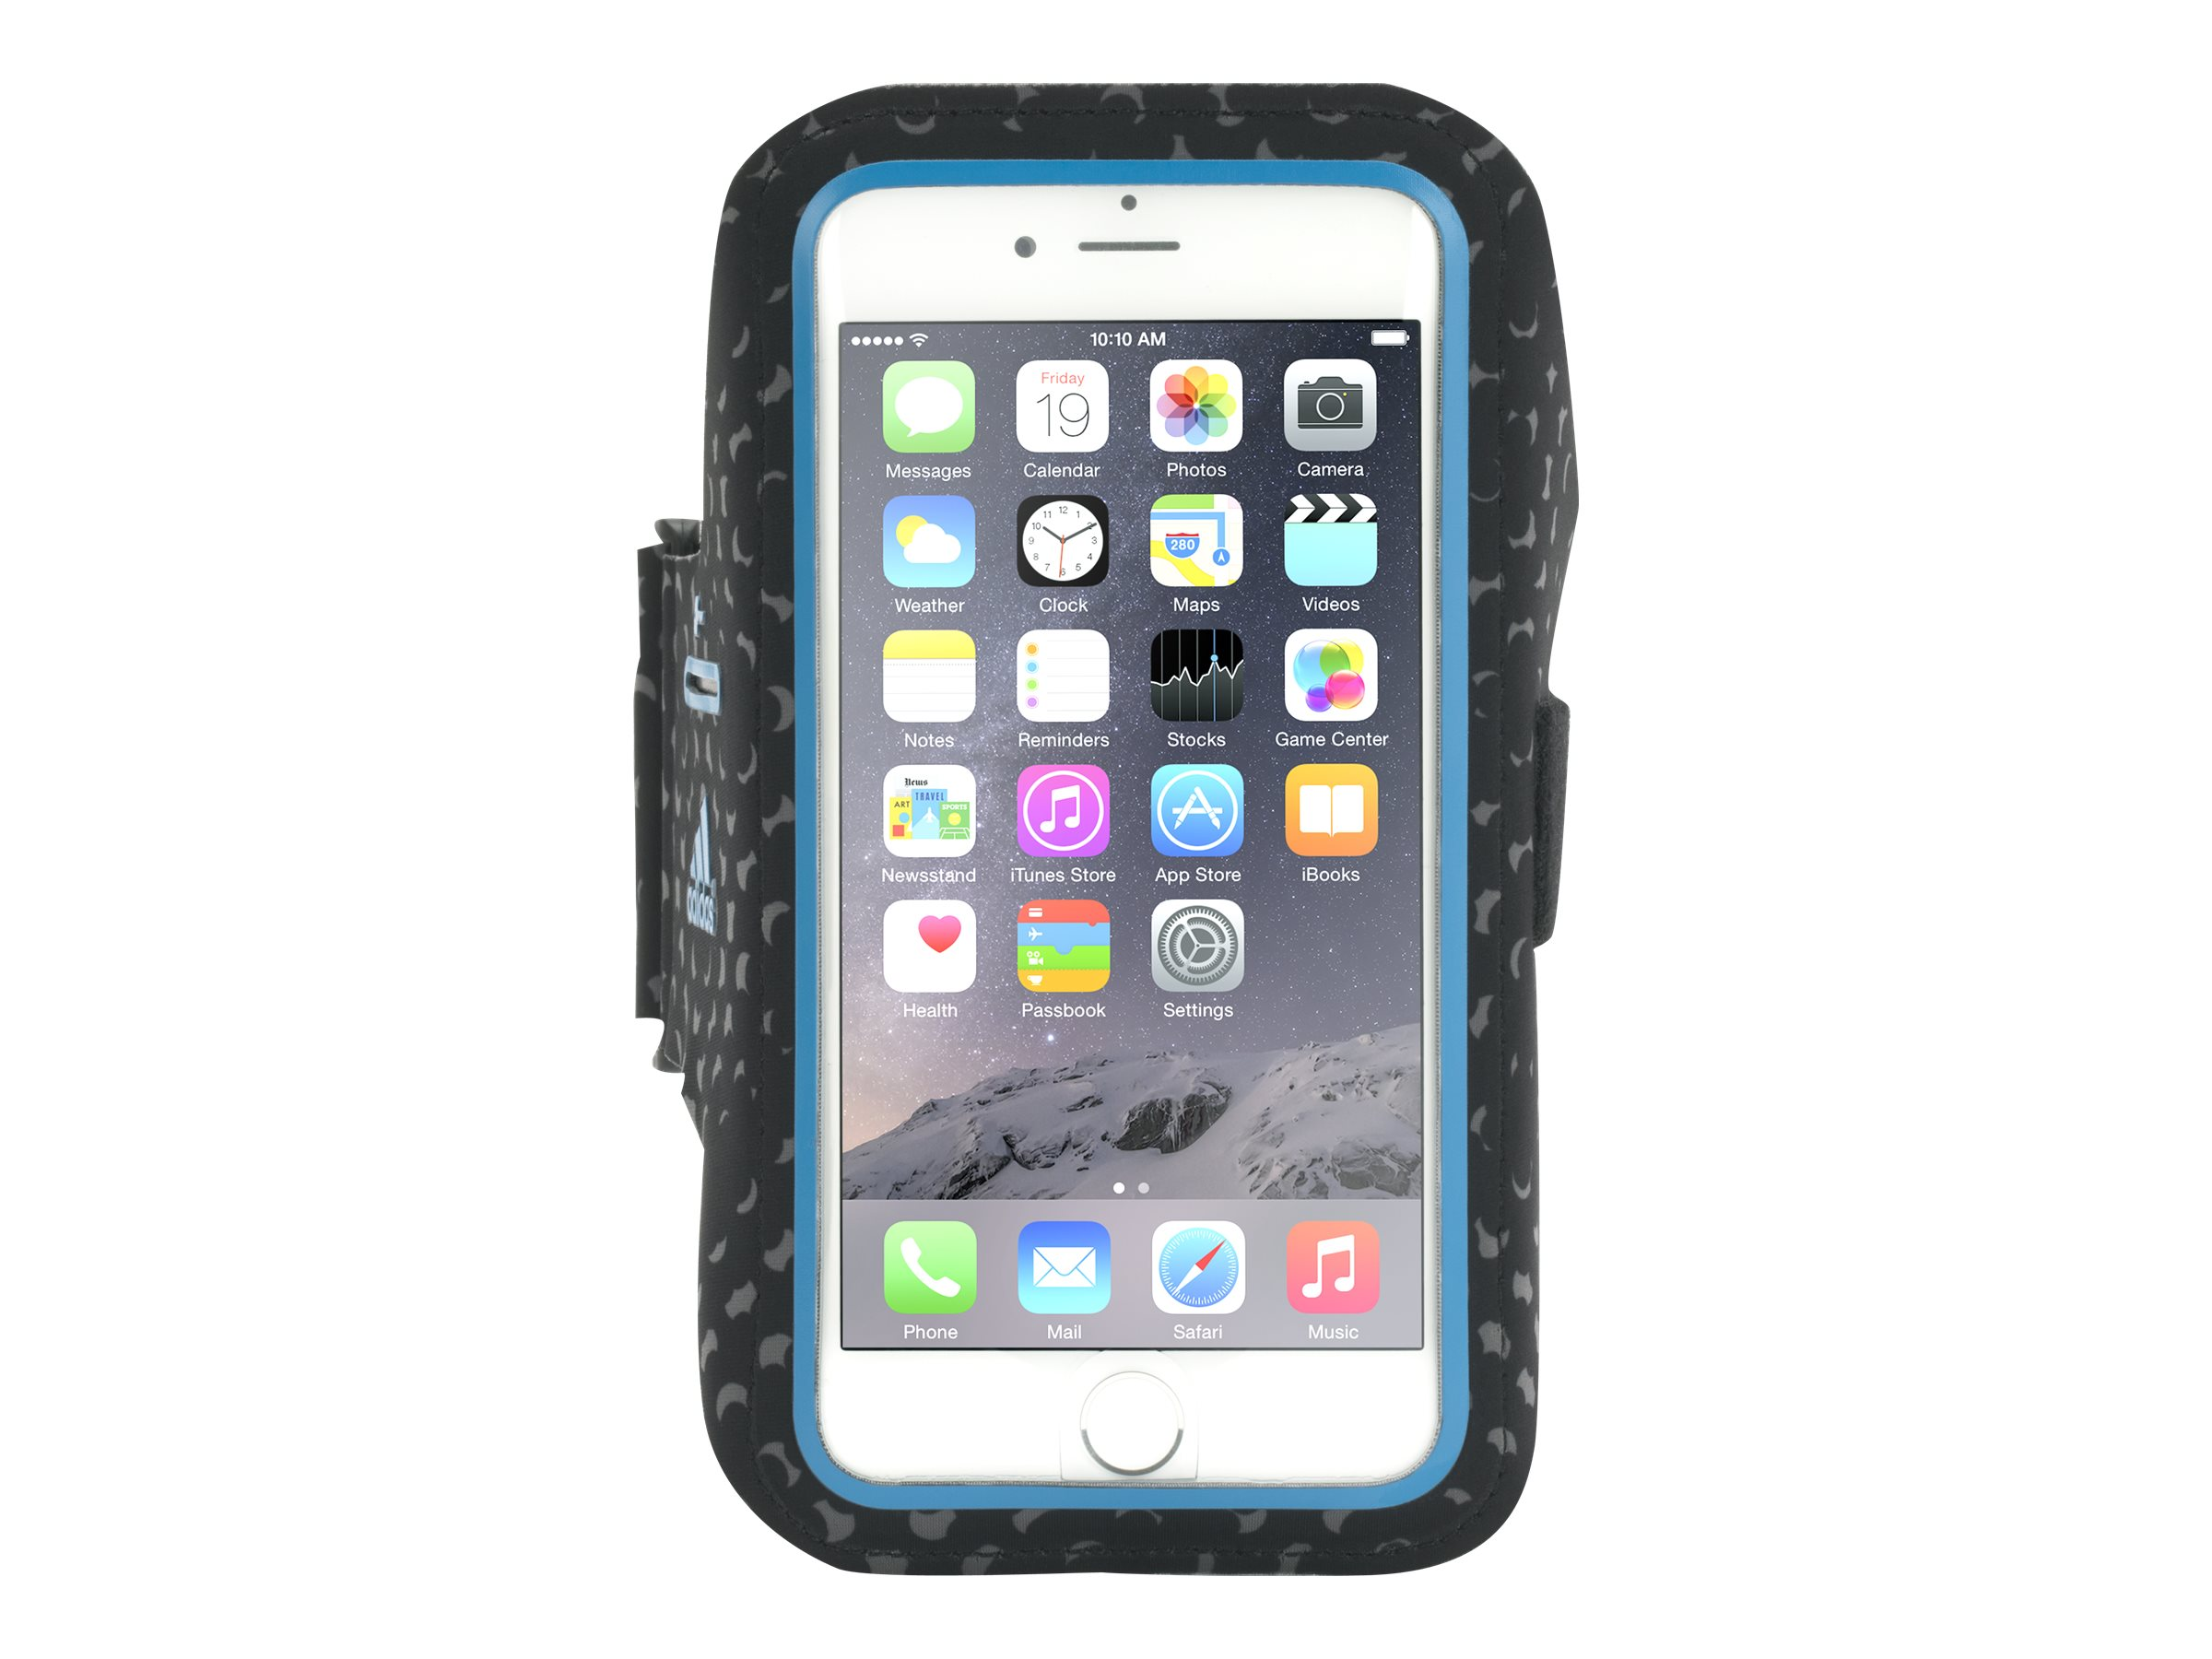 Griffin Armband Adidas for Galaxy S5 S6, Black Blue, GB38824, 19697101, Carrying Cases - Phones/PDAs